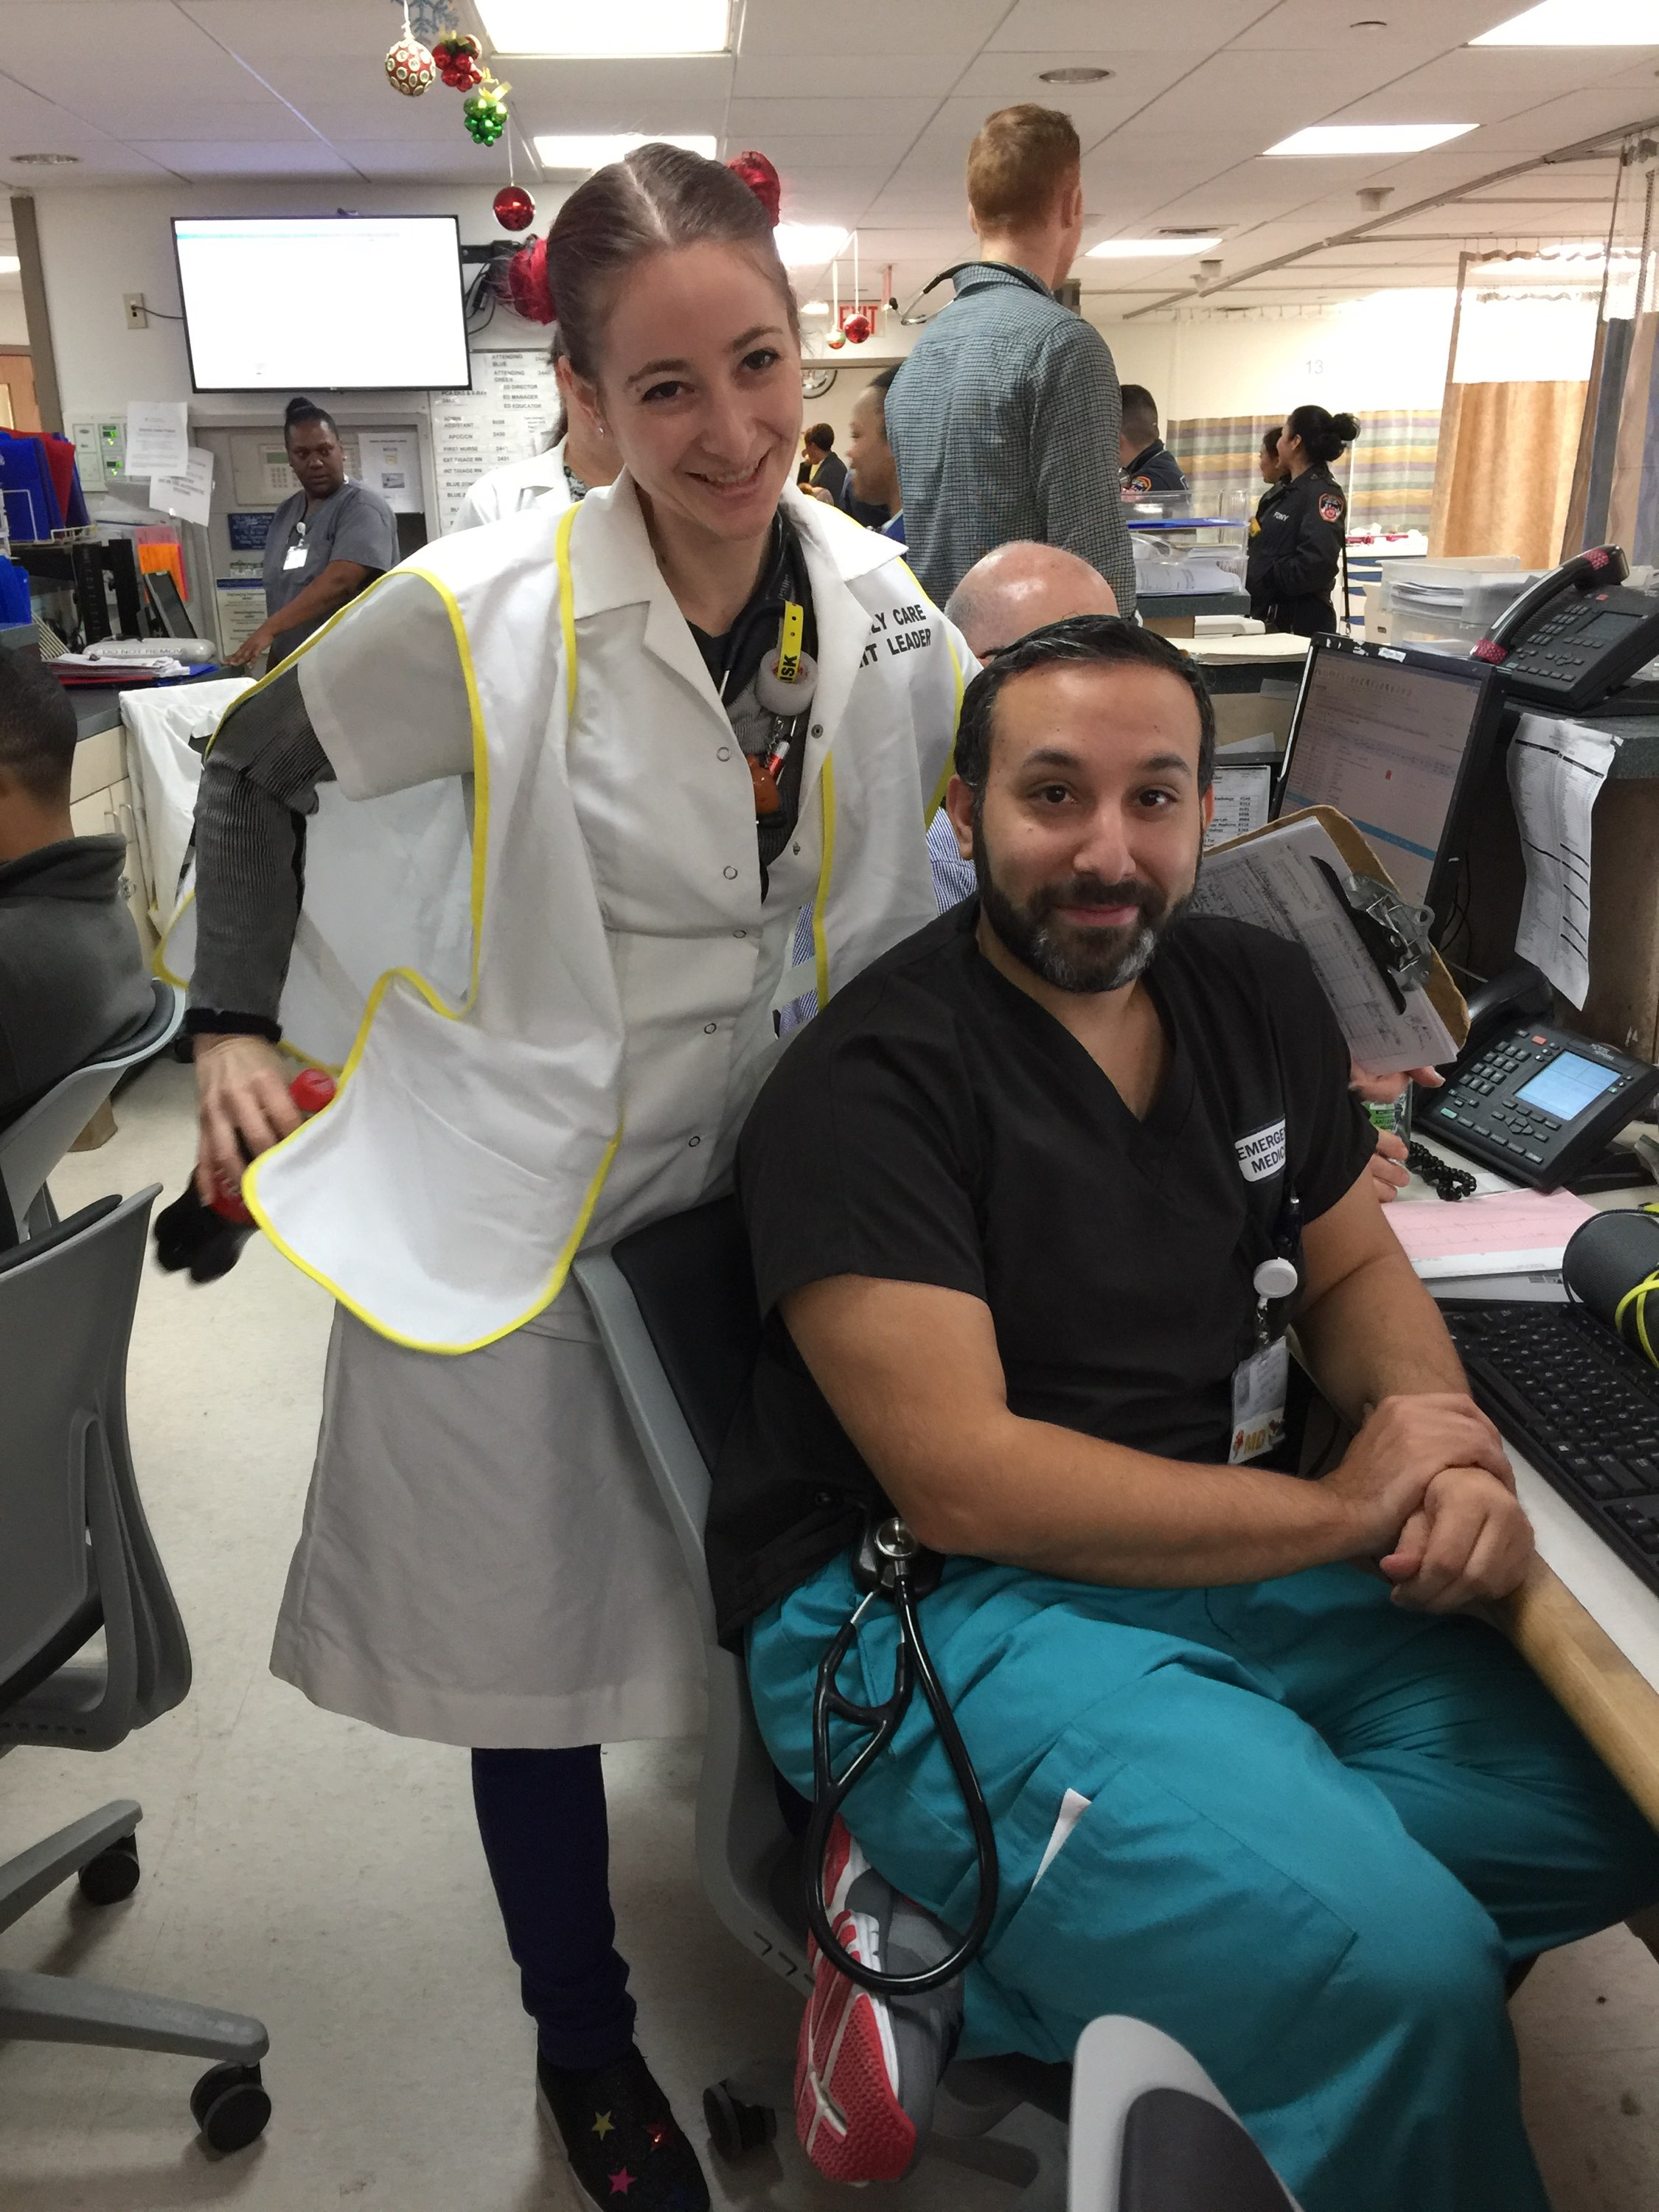 Dr. Ambert forcing a smile onto Dr. Butel's usually stolid mien (both of those words can be your Word-of-the-Day)